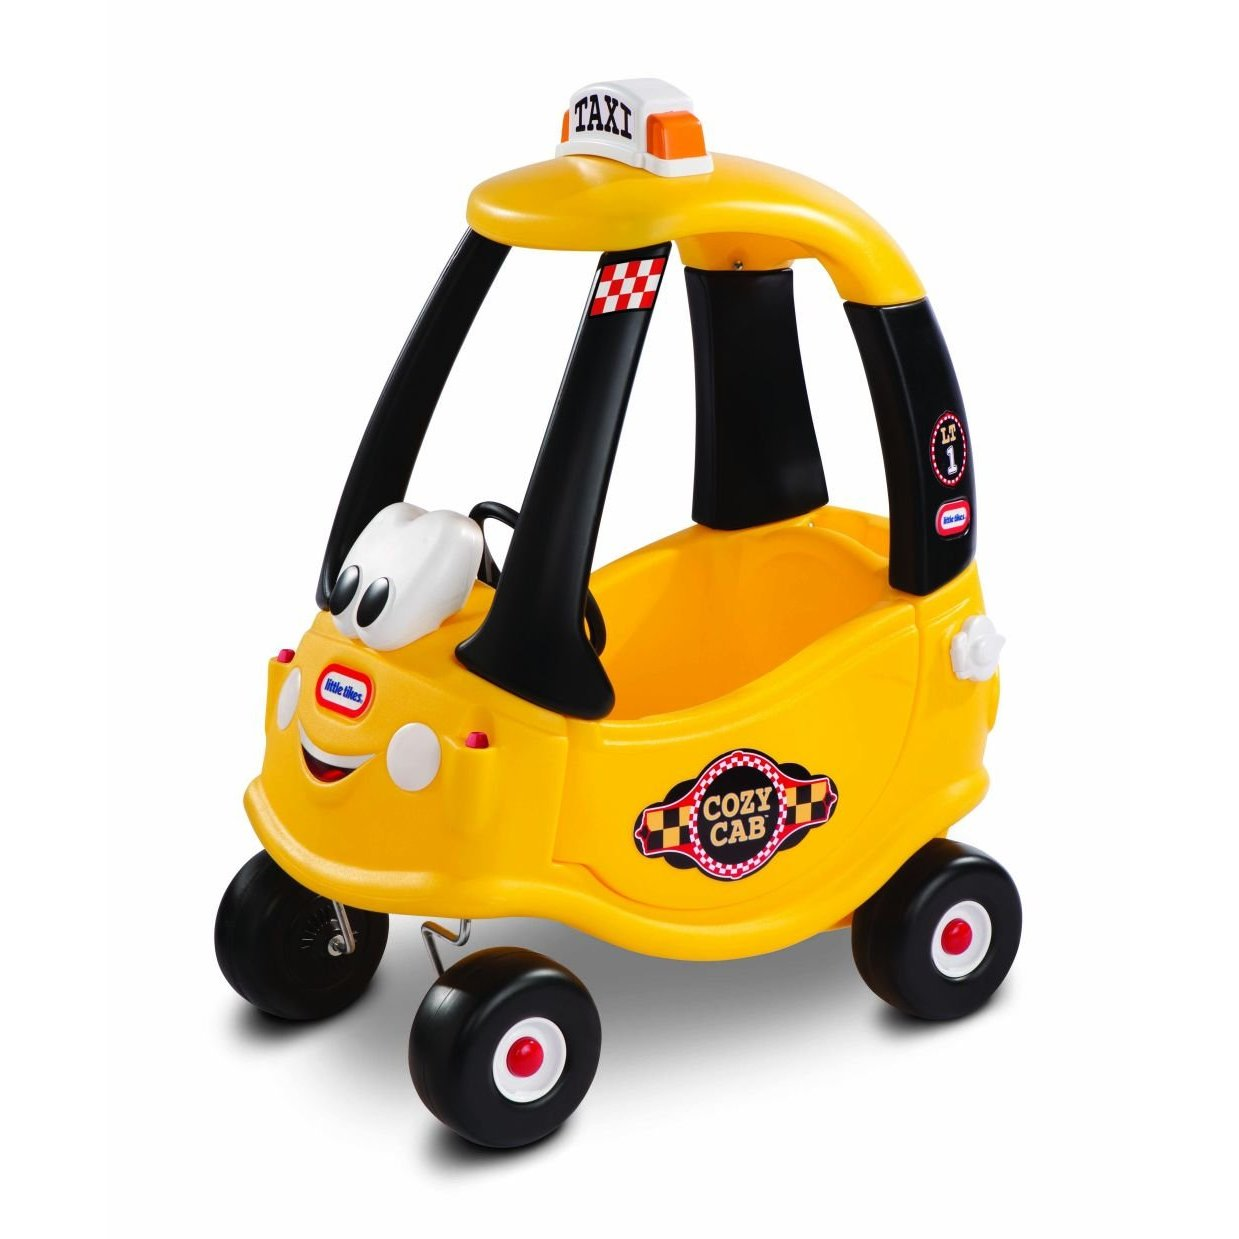 0076: Little Tikes Cozy Cab